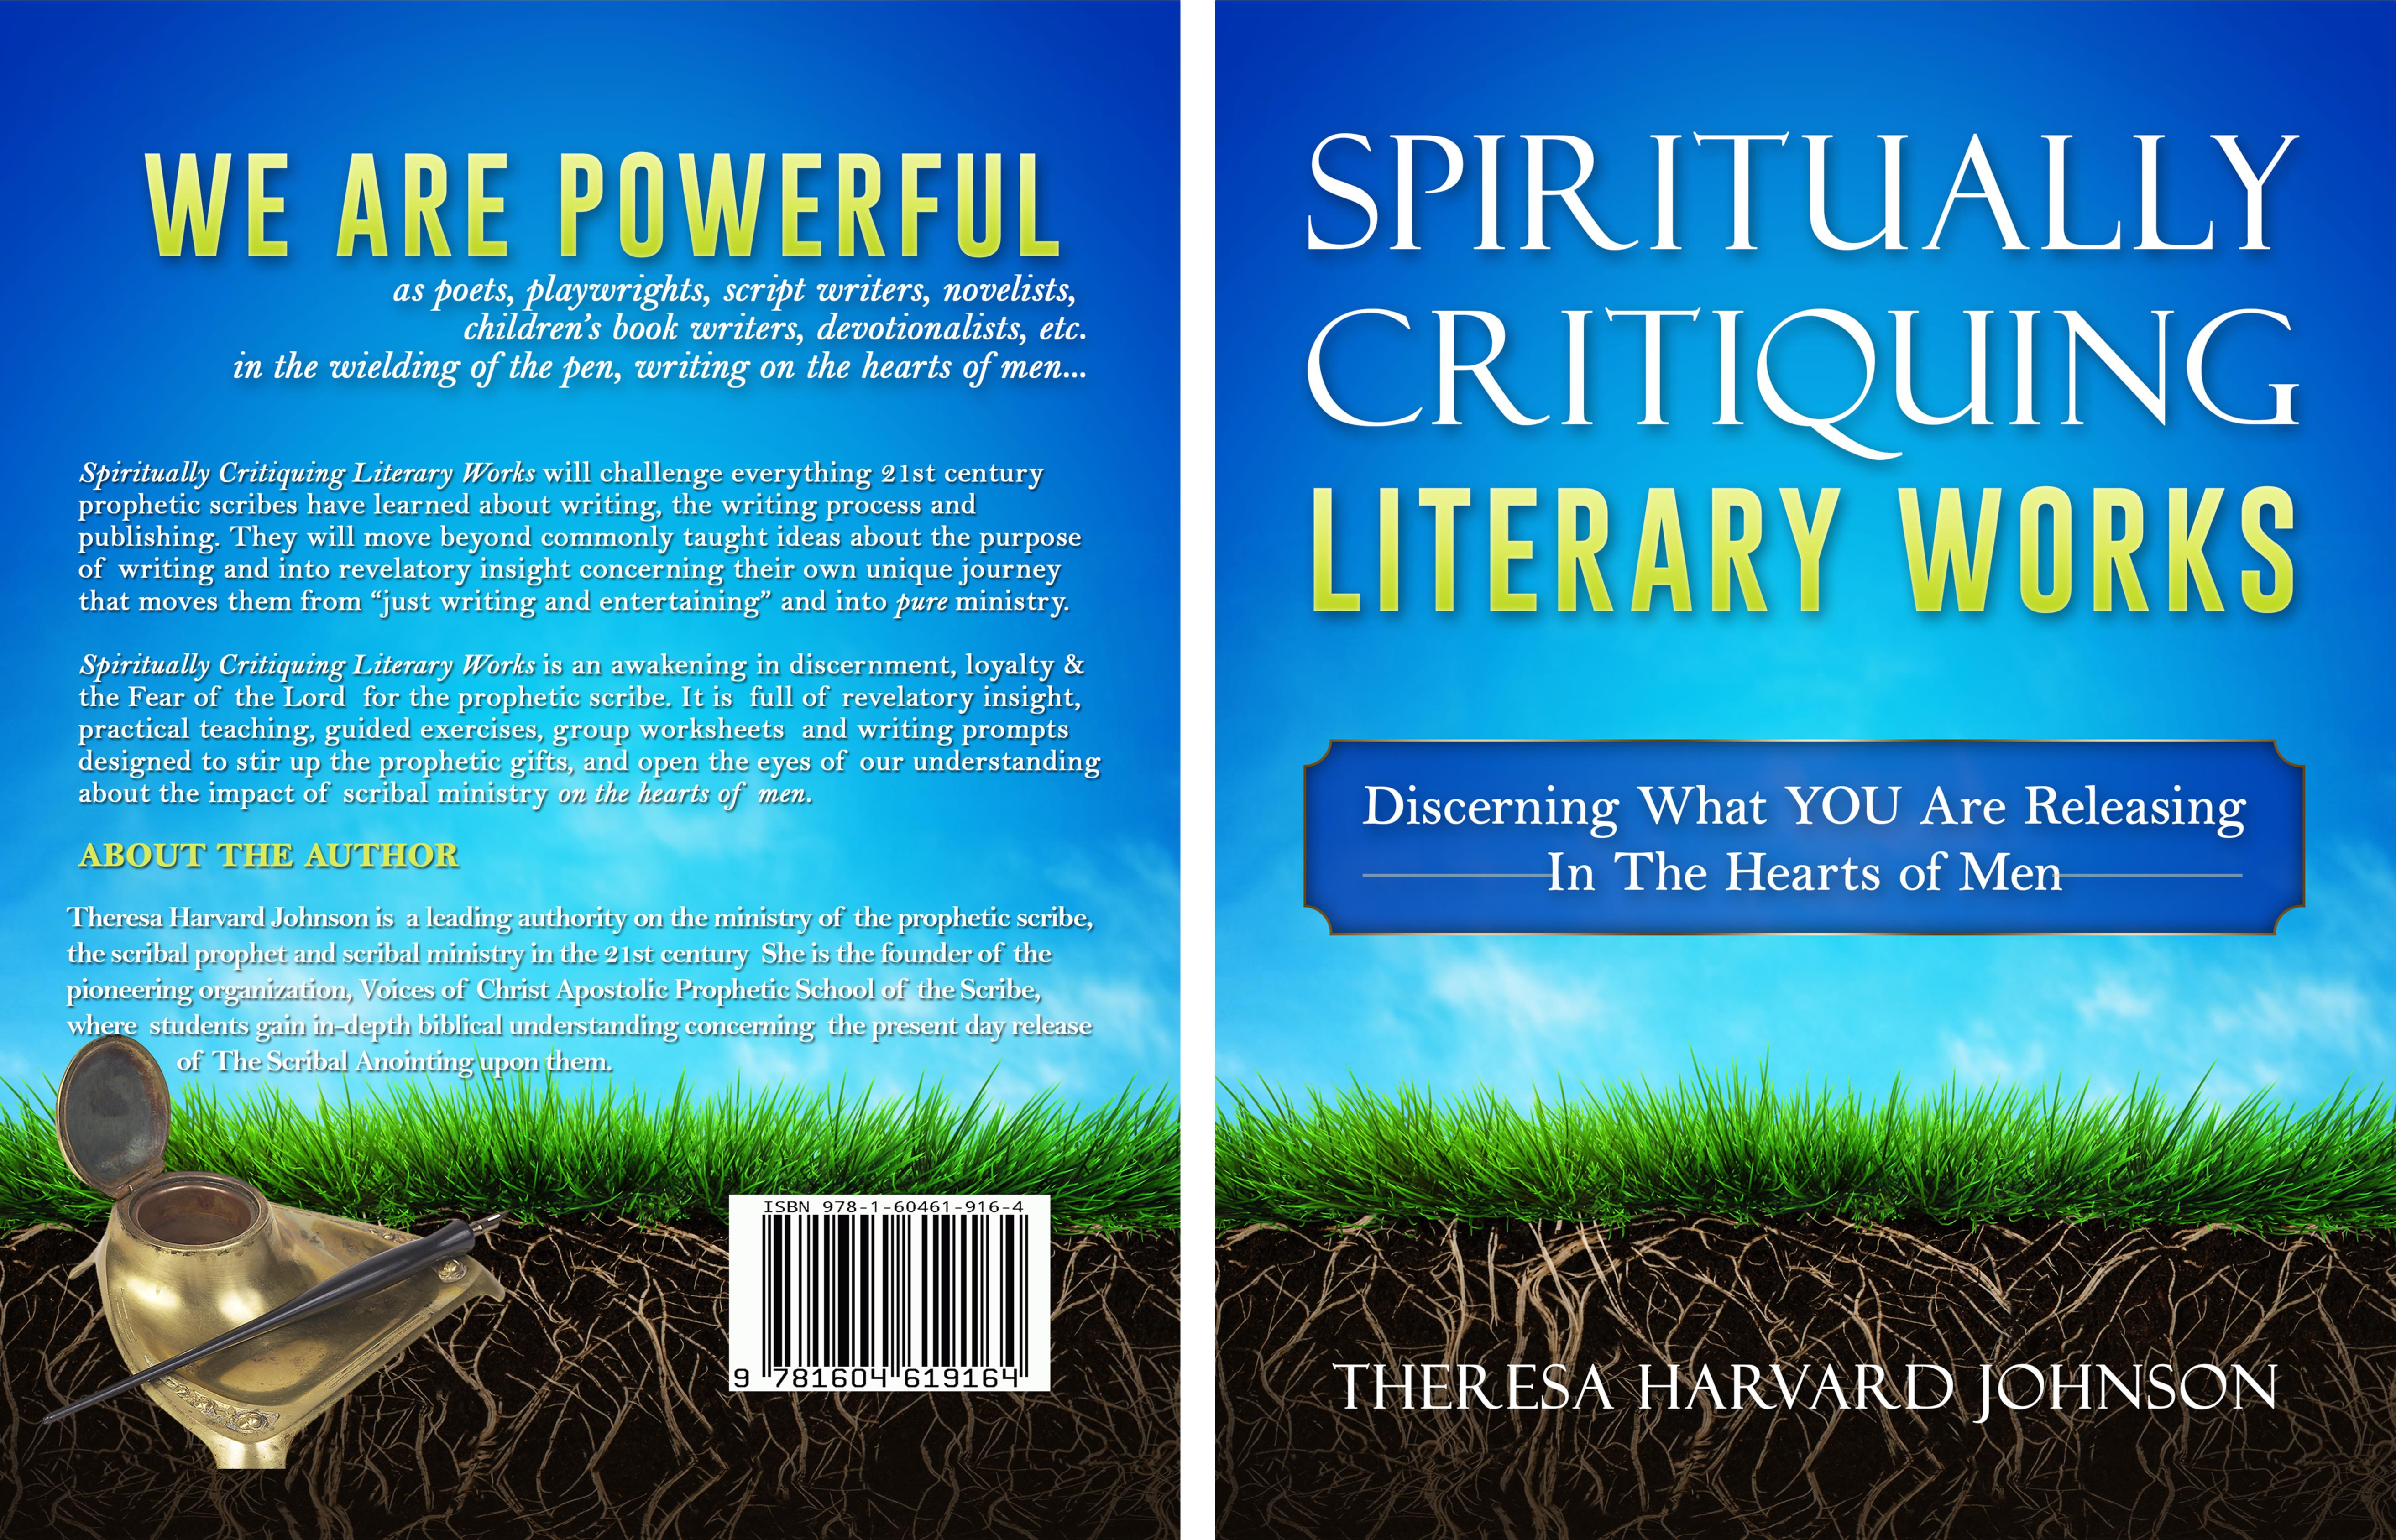 Spiritually Critiquing Literary Works cover image